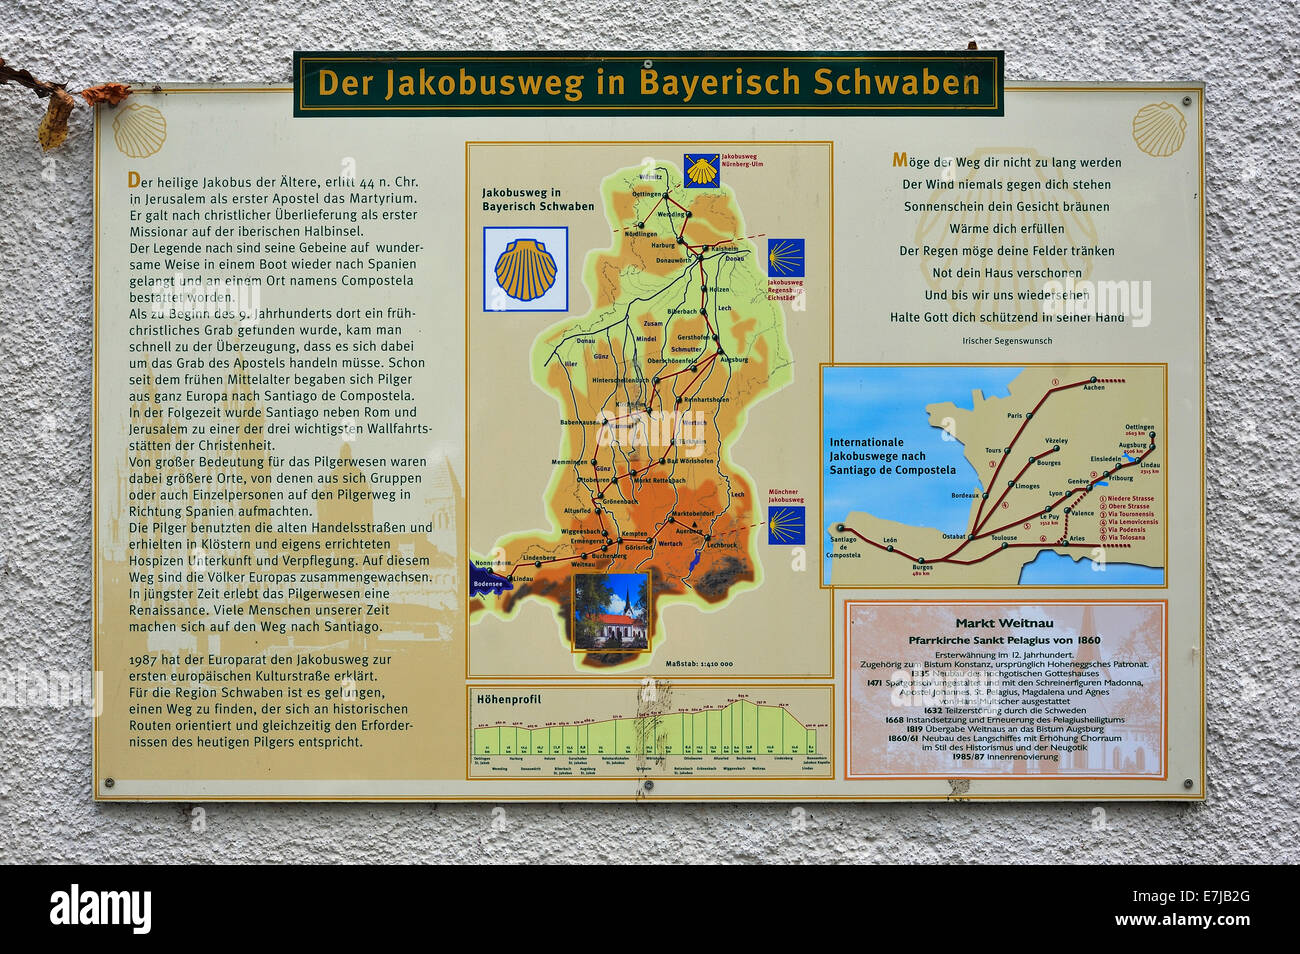 Map of the Way of St. James in Swabia, Weitnau, Bavaria, Germany - Stock Image